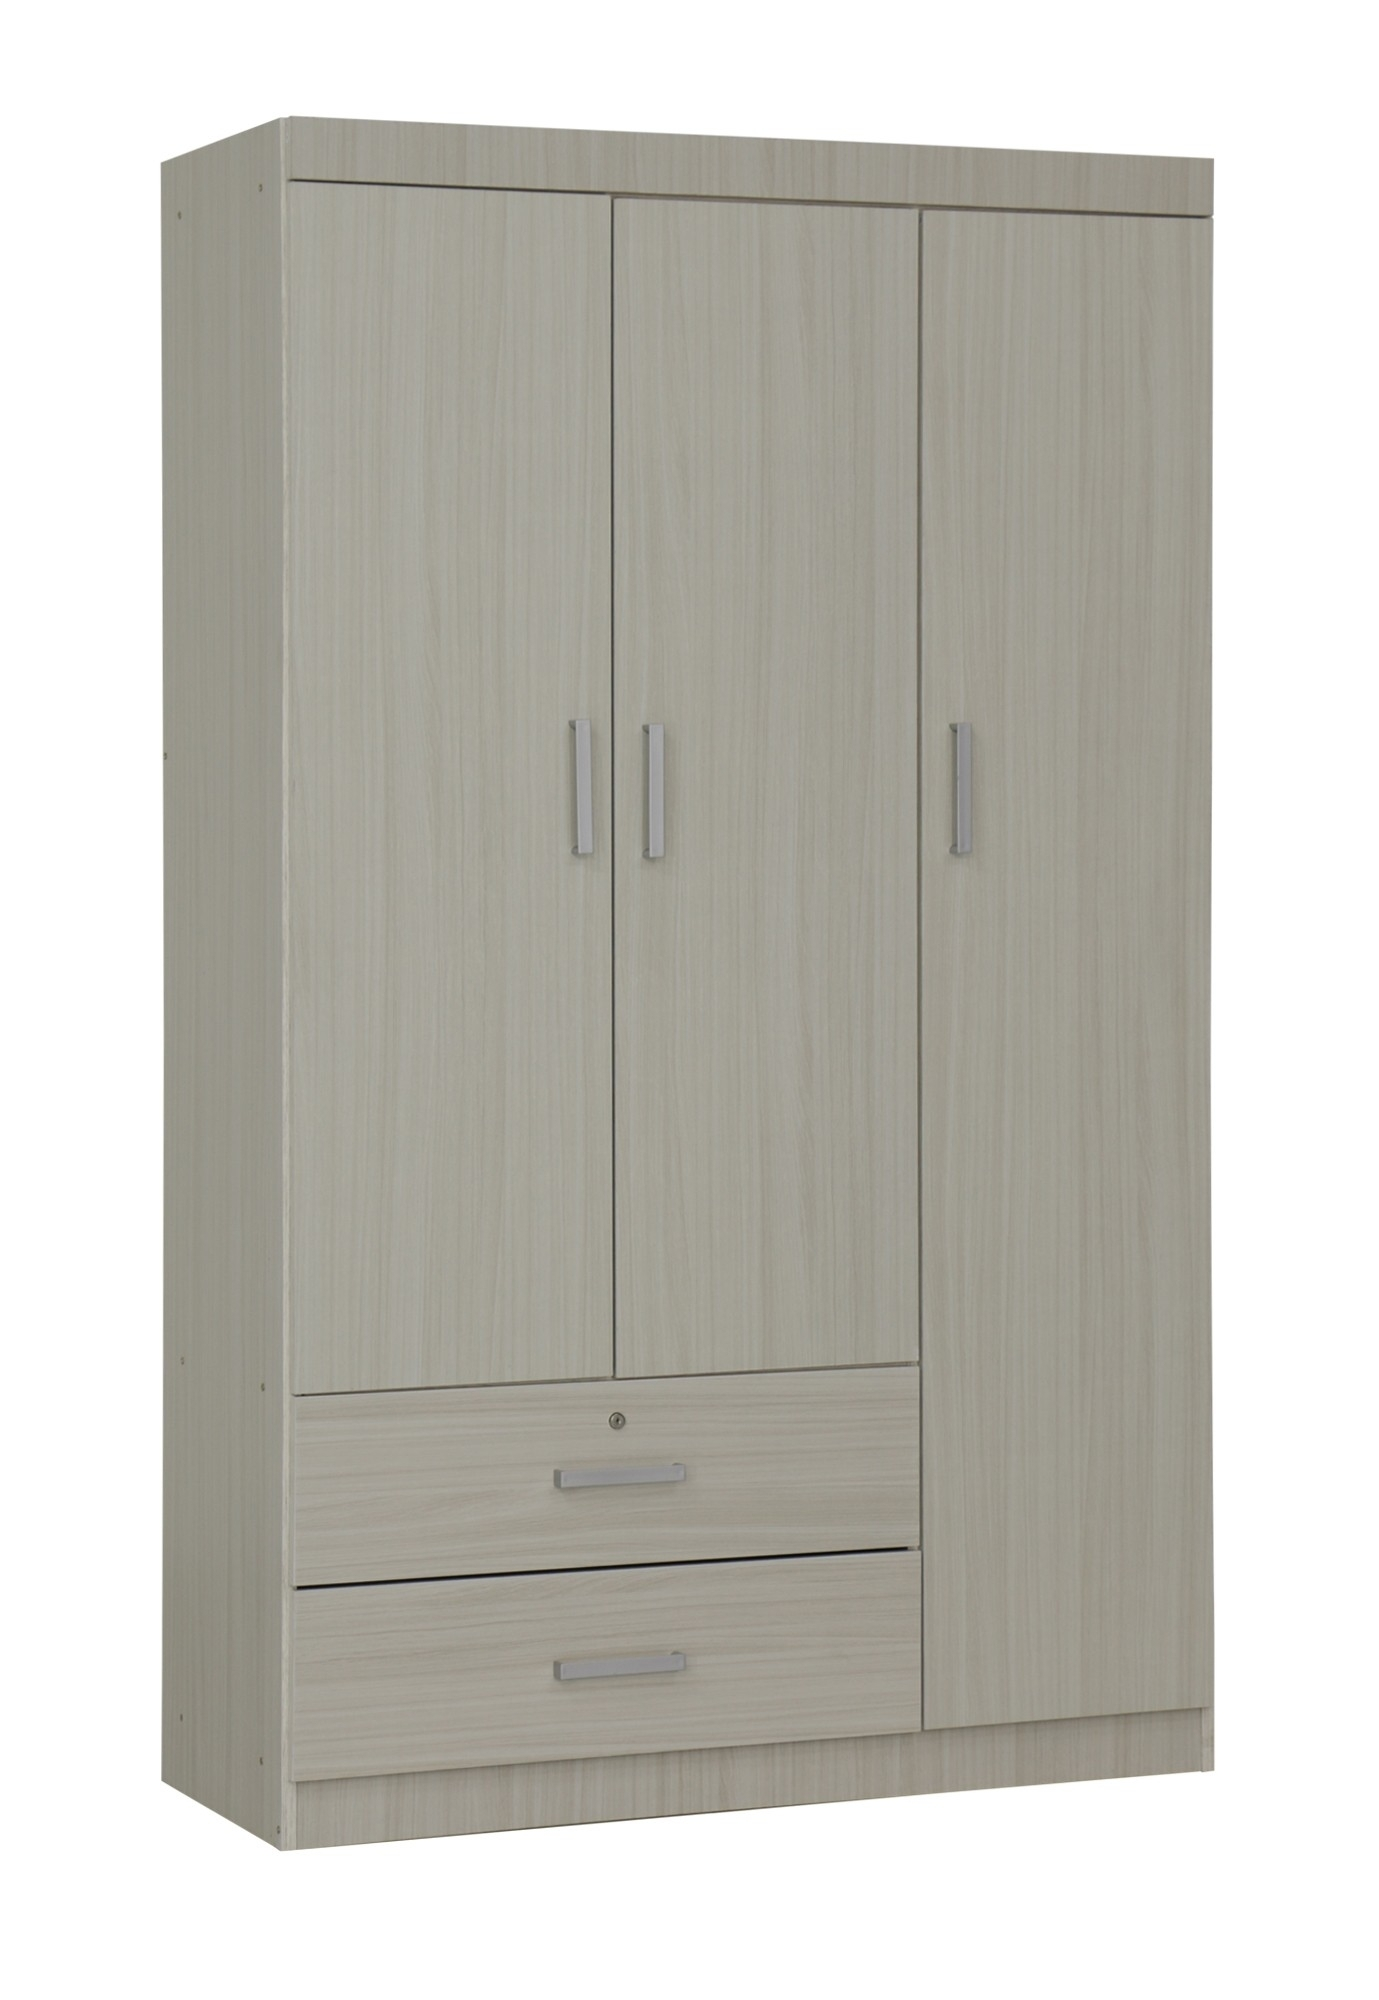 Elifel 3 Door Wardrobe In White Wash | Furniture & Home Décor | Fortytwo For White Wash 3 Door 3 Drawer Sideboards (Photo 18 of 30)